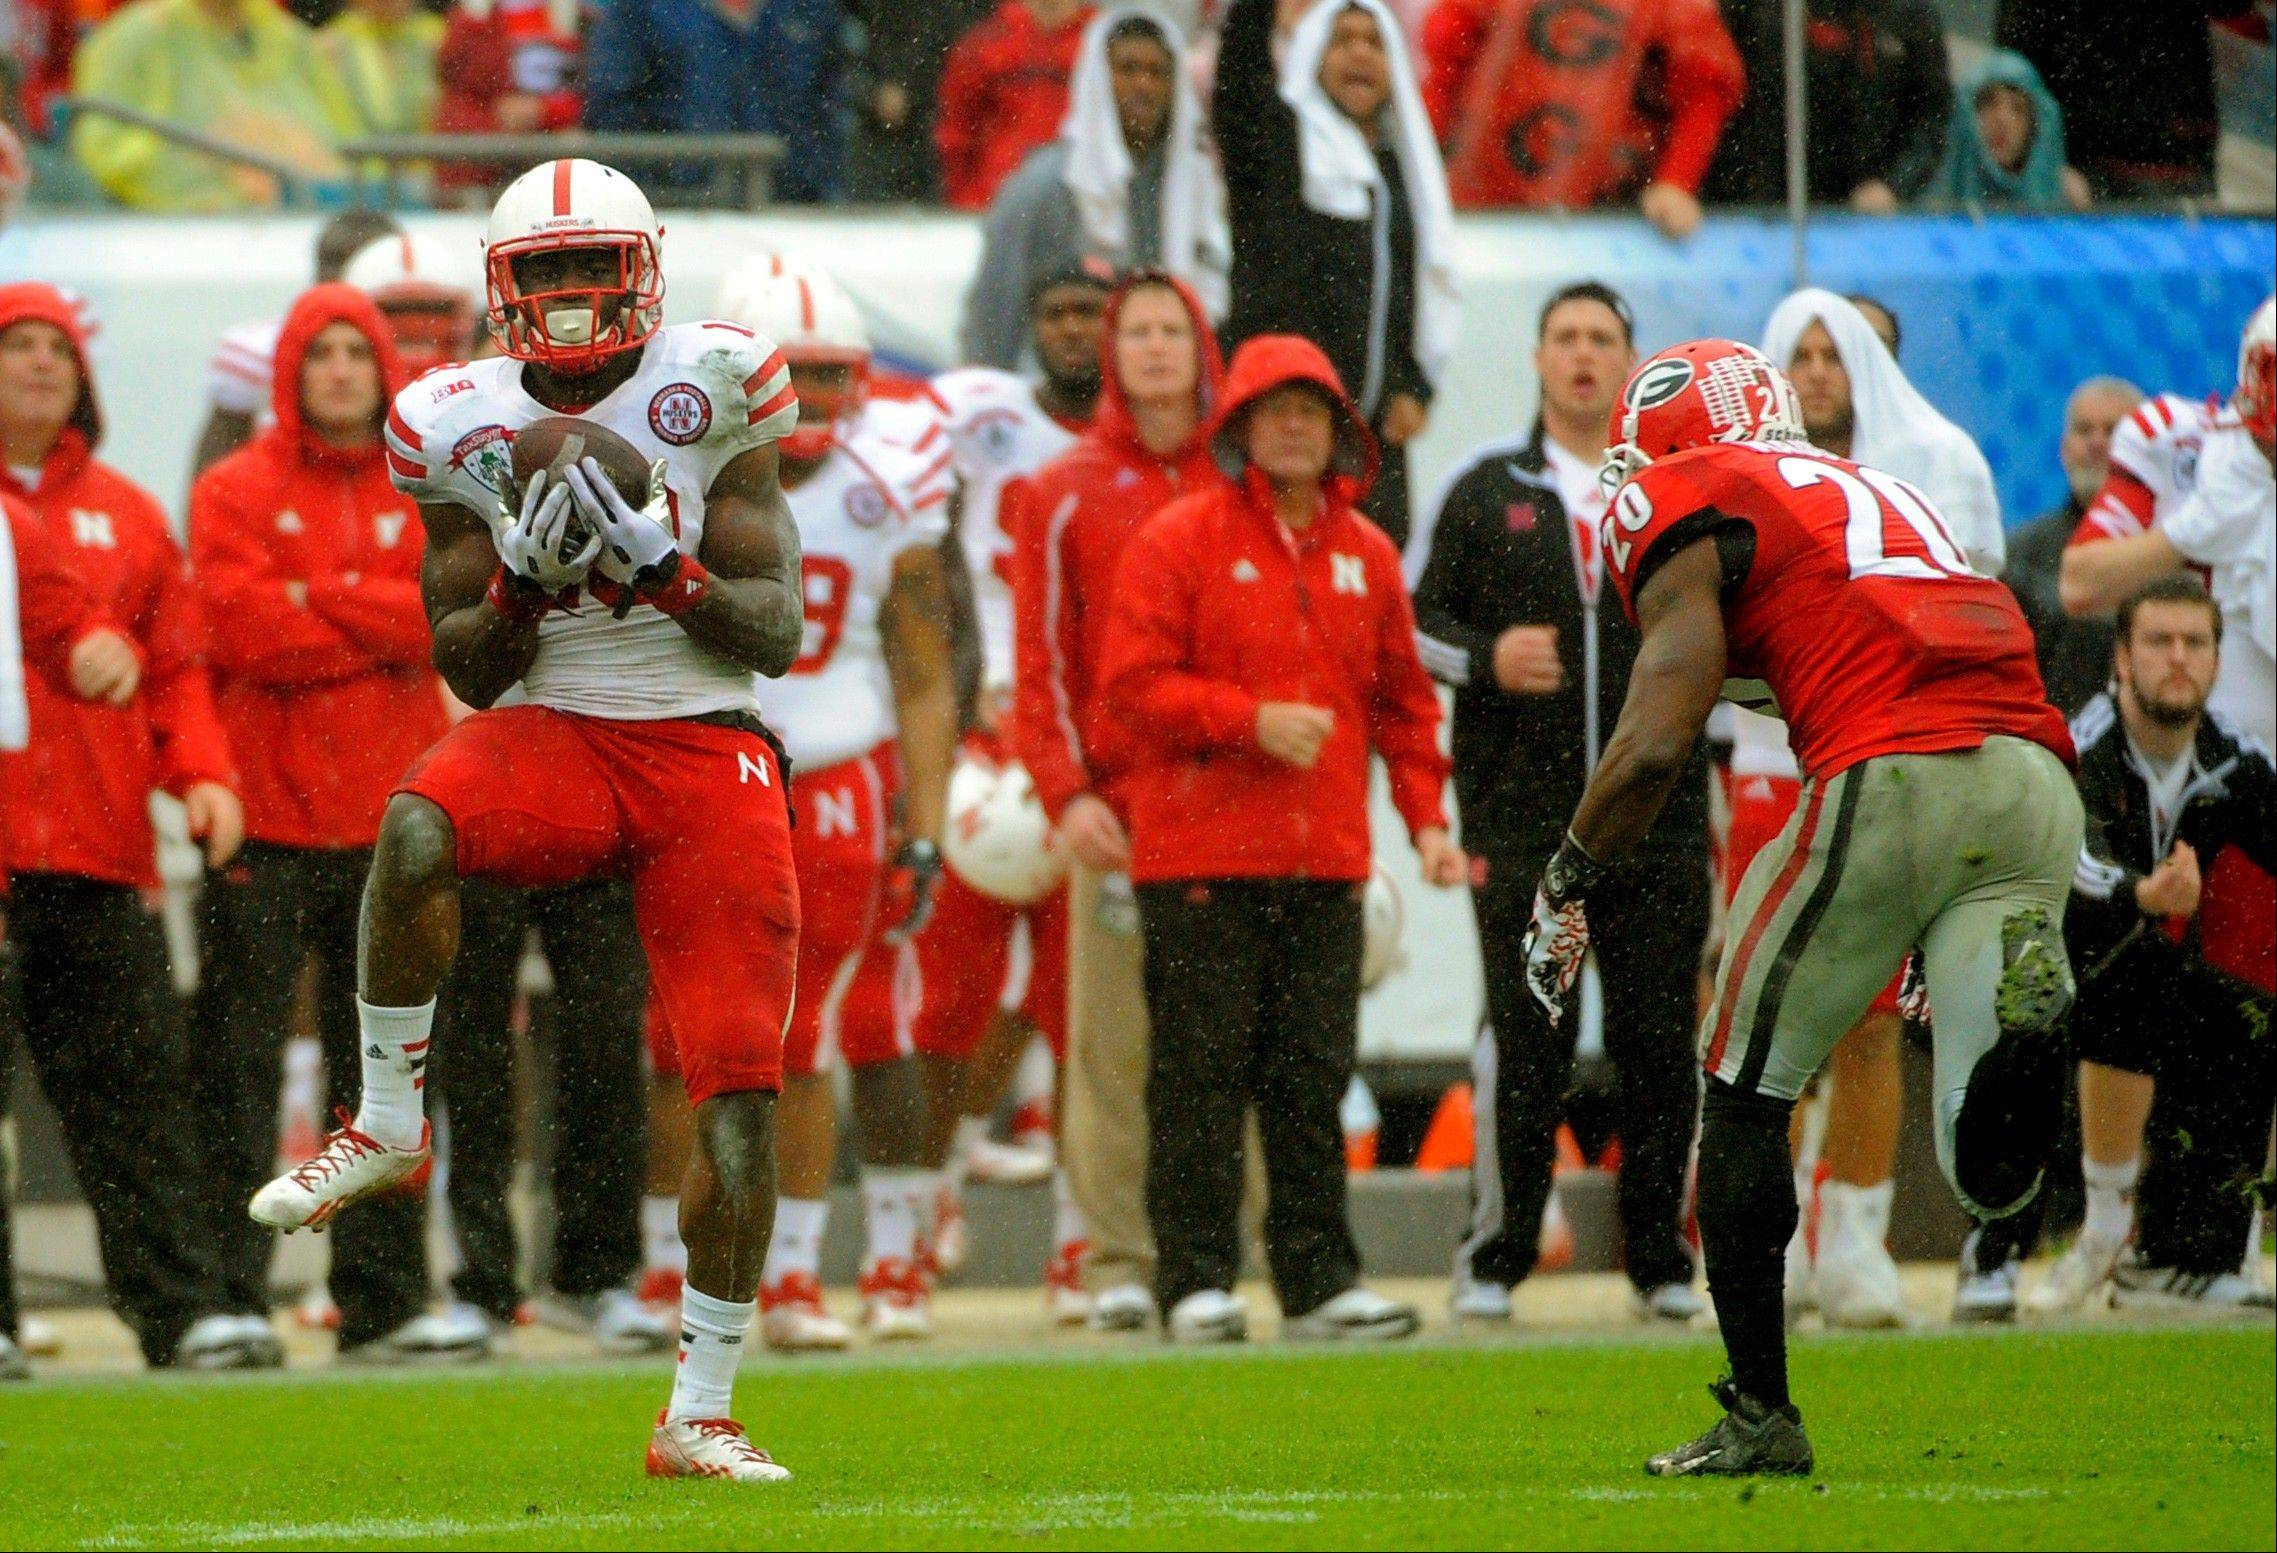 Nebraska wide receiver Quincy Enunwa (18) catches a pass for a 99-yard touchdown reception during the second half of the Gator Bowl NCAA college football game against Georgia, Wednesday, Jan. 1, 2014, in Jacksonville, Fla. Nebraska beat Georgia 24-19.